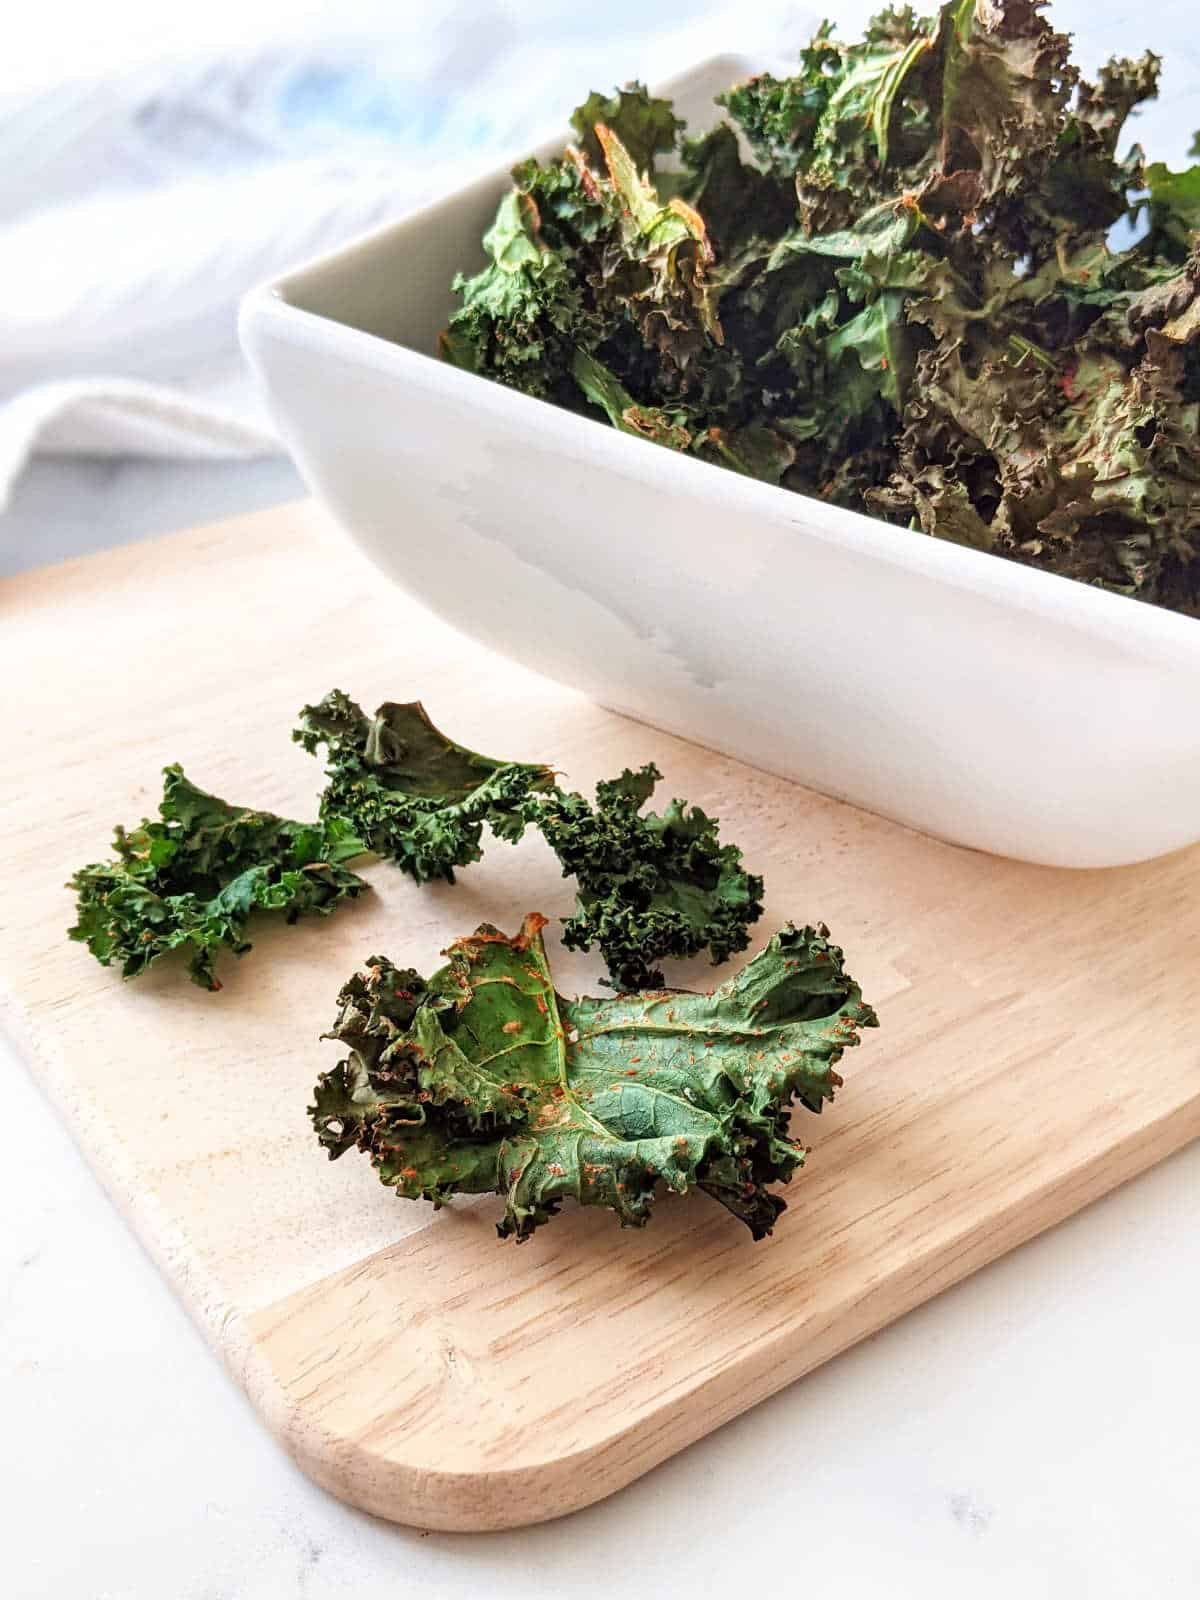 A bowl of kale chips on a cutting board with some chips on the cutting board next to the bowl.